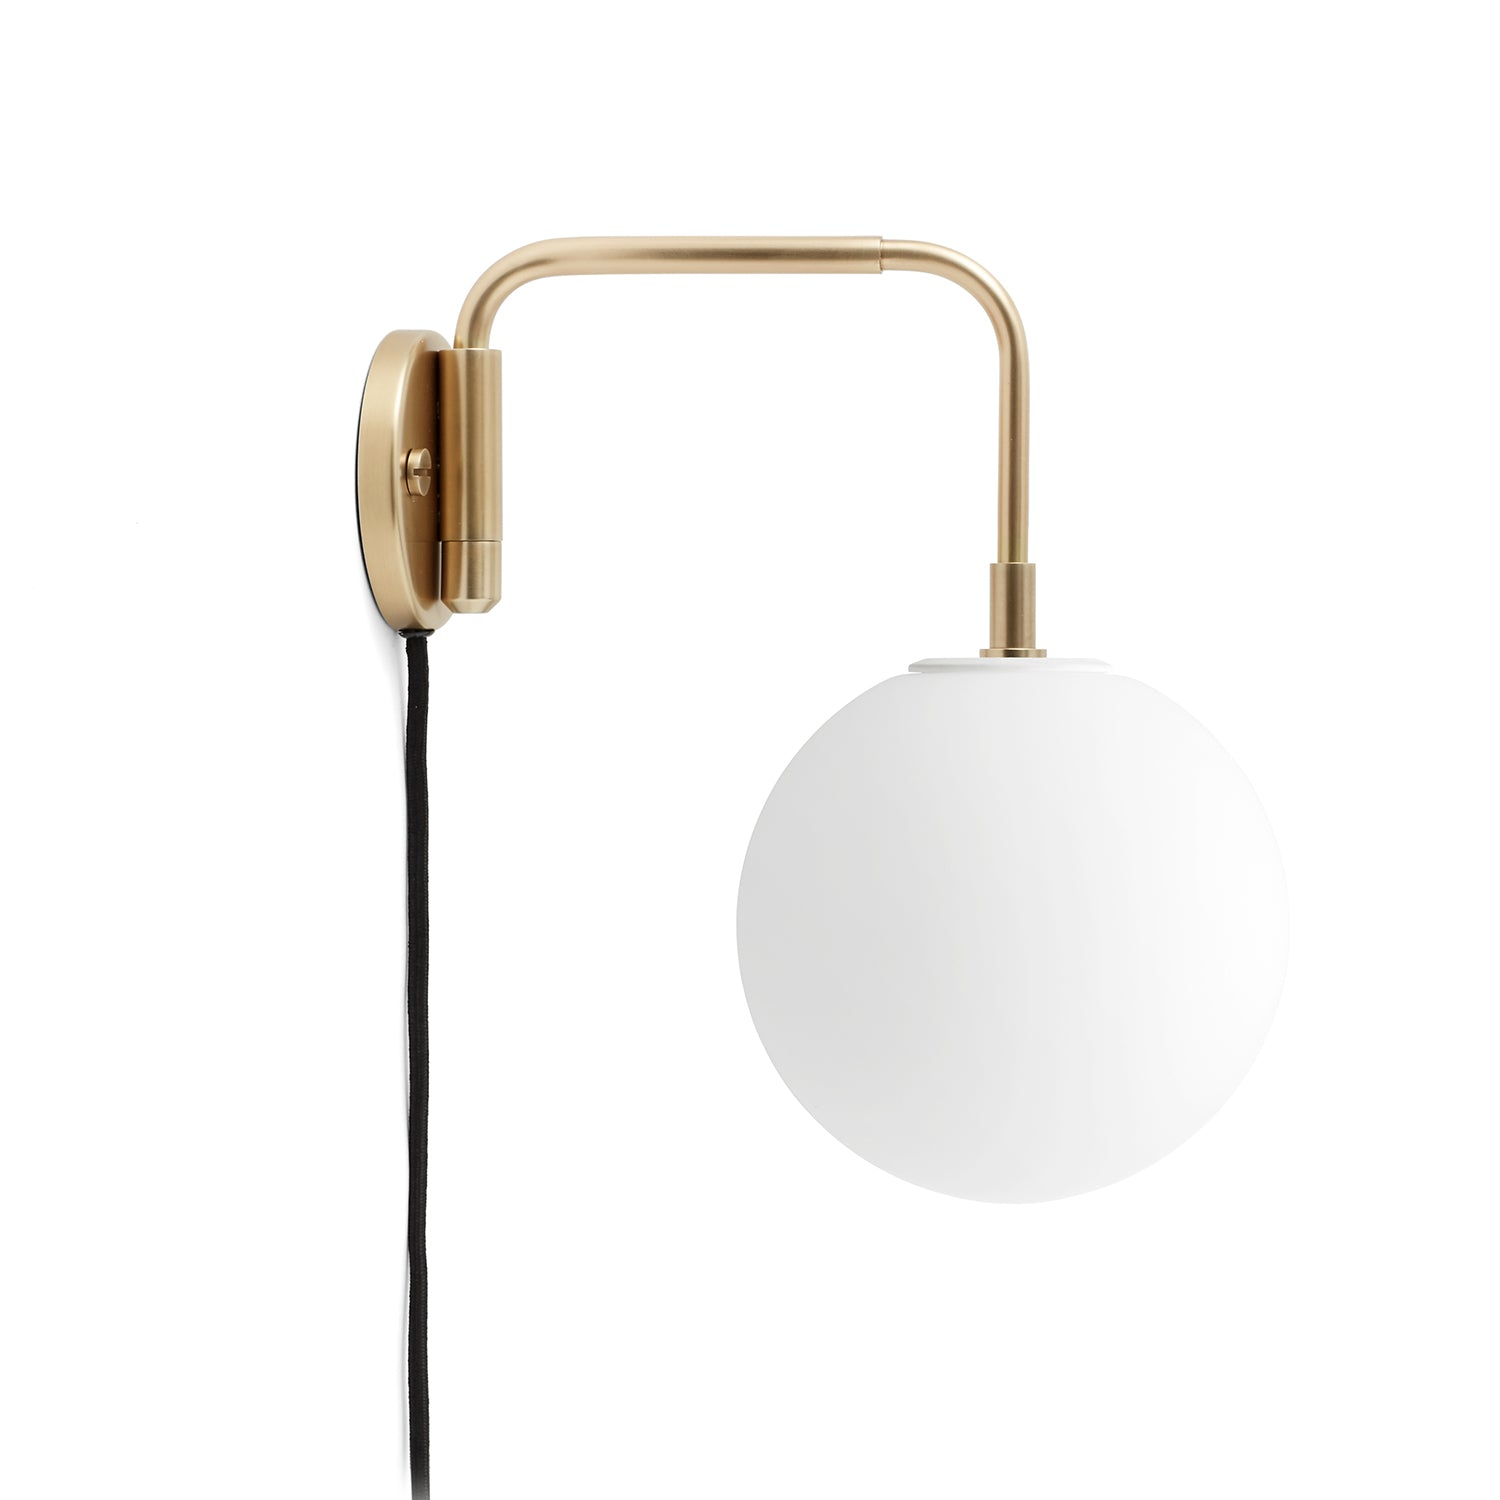 Tribeca Collection: Staple Wall Light